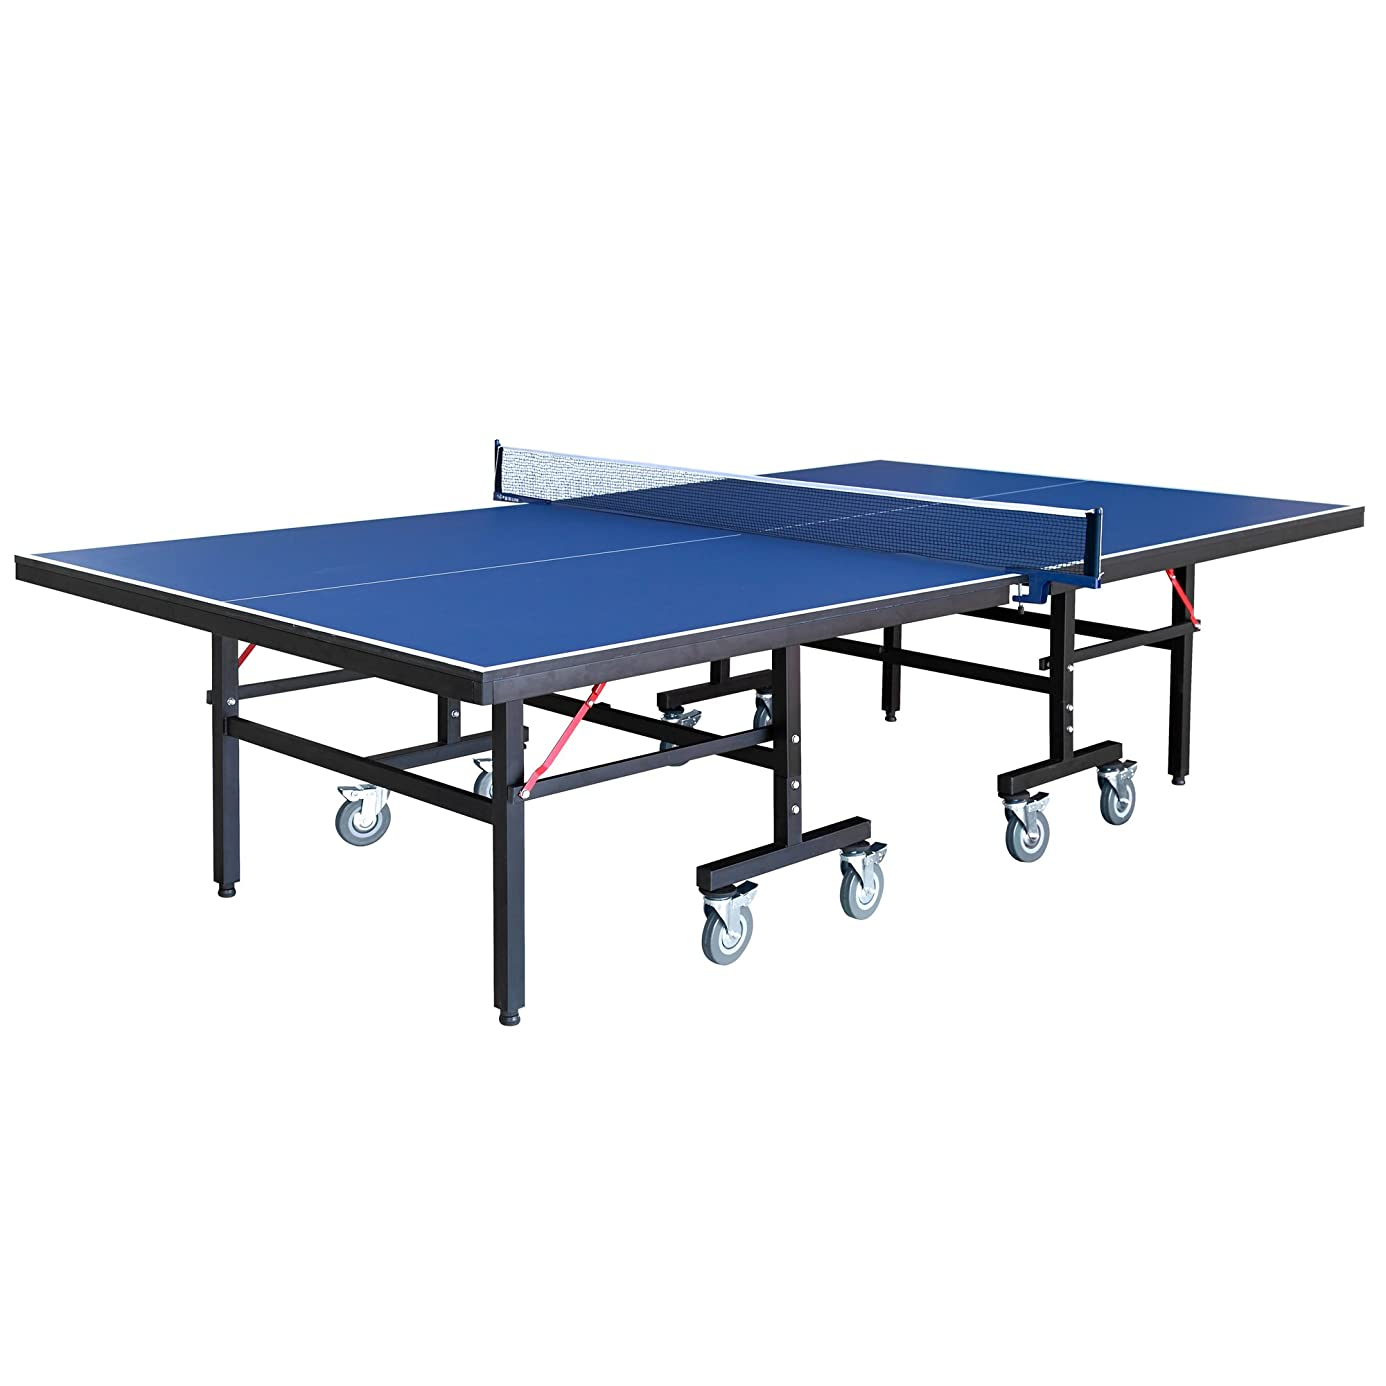 Hathaway Back Stop 9-Foot Table Tennis for Family Game Rooms with Foldable Halves for Individual Play includes Net, Paddles, Balls